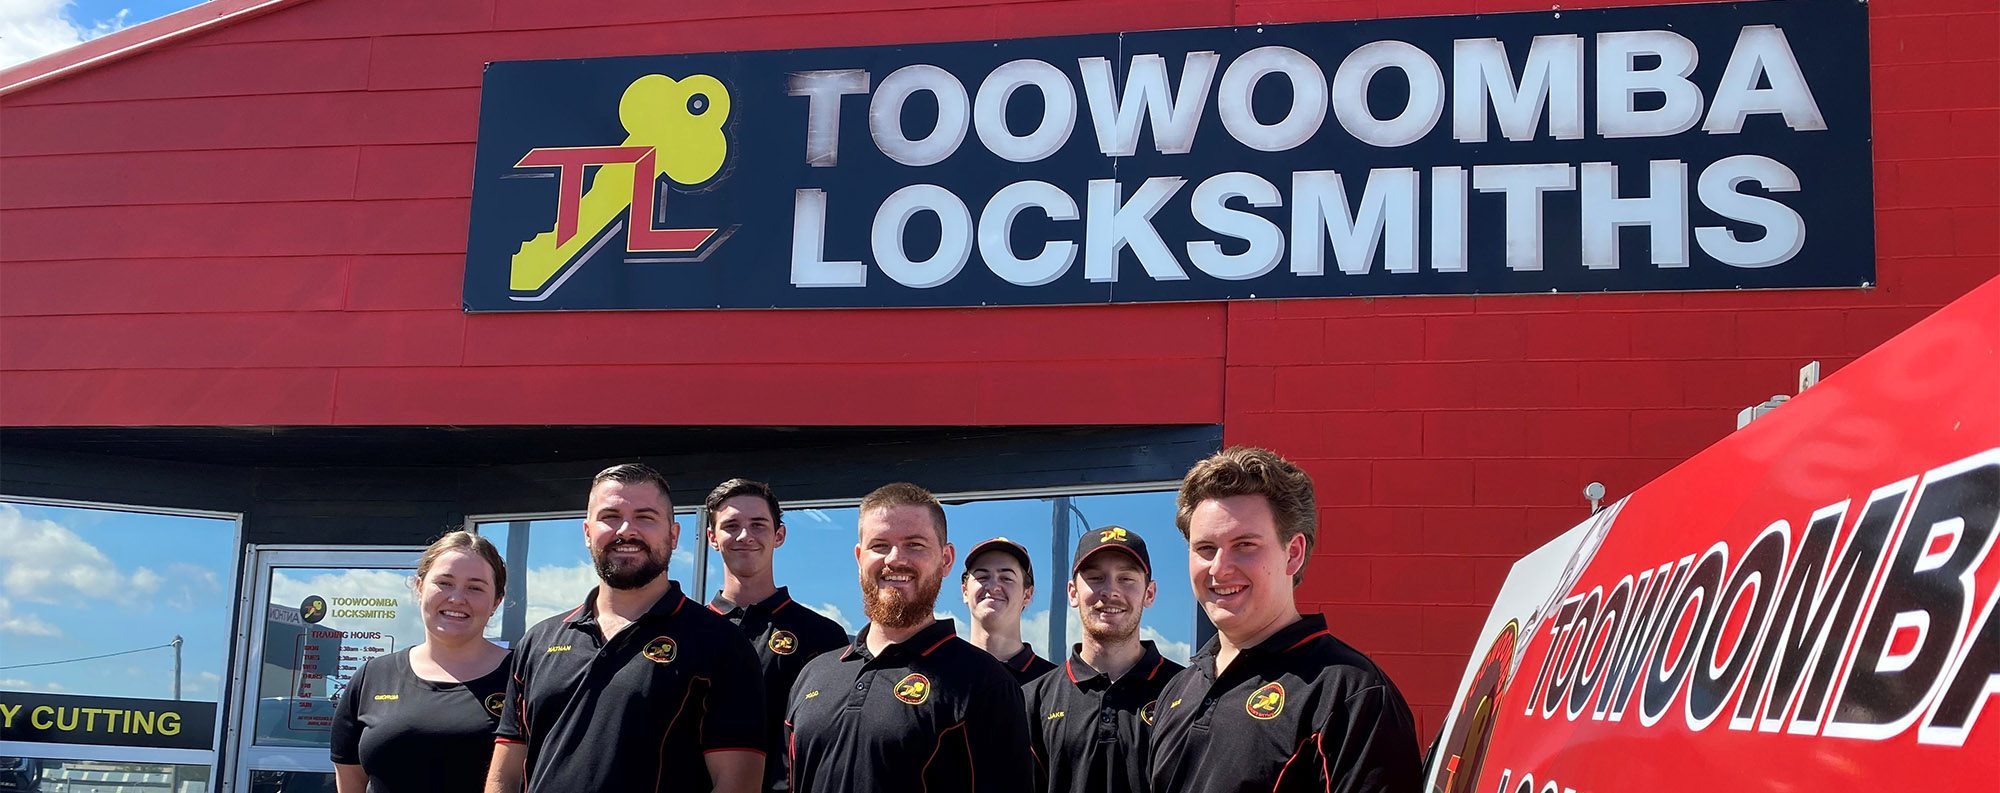 Locksmiths in Toowoomba